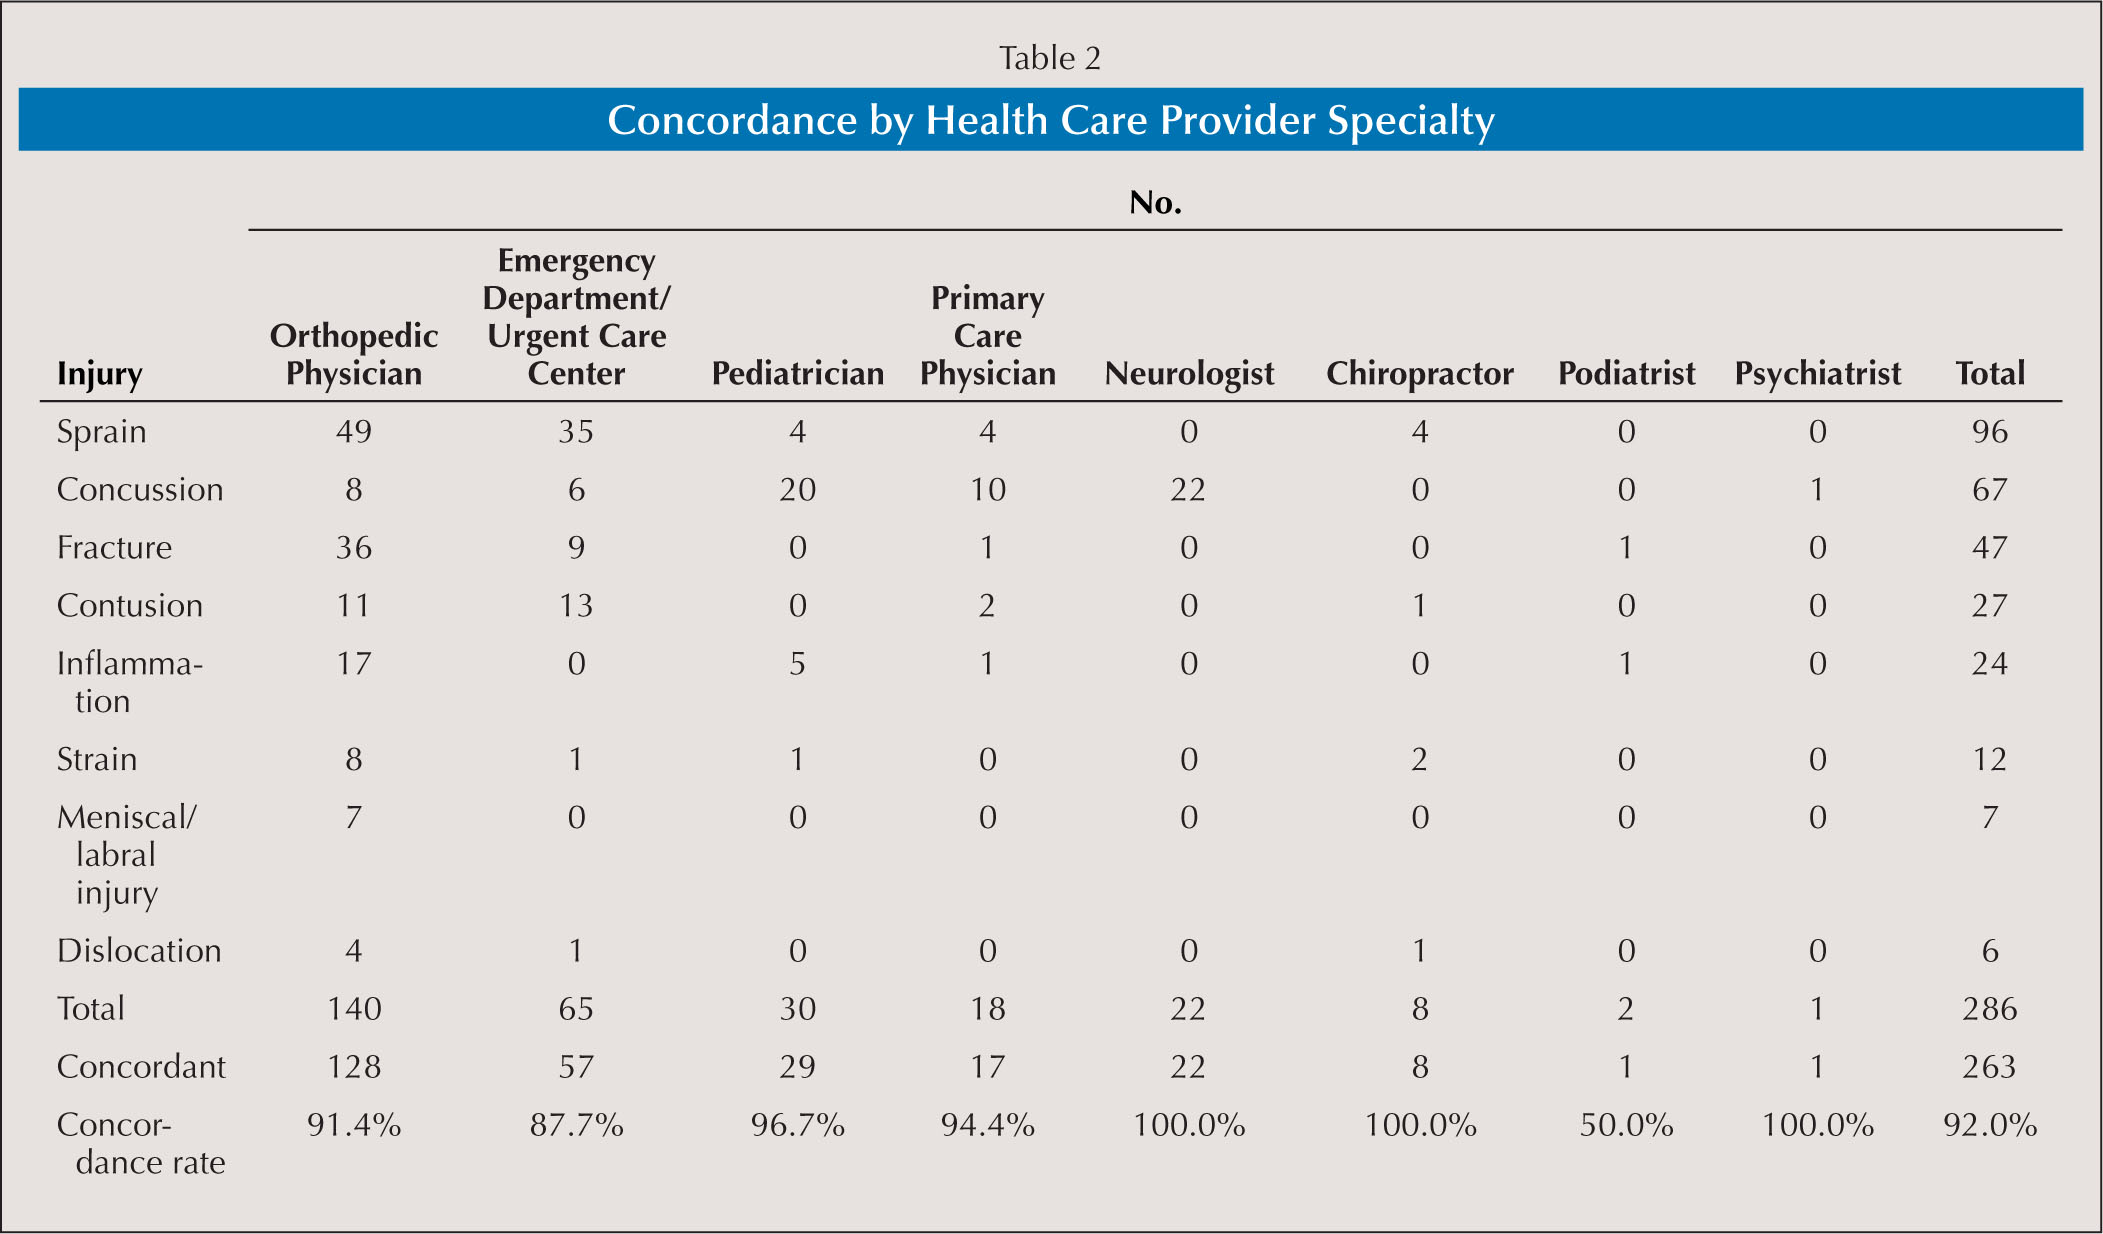 Concordance by Health Care Provider Specialty